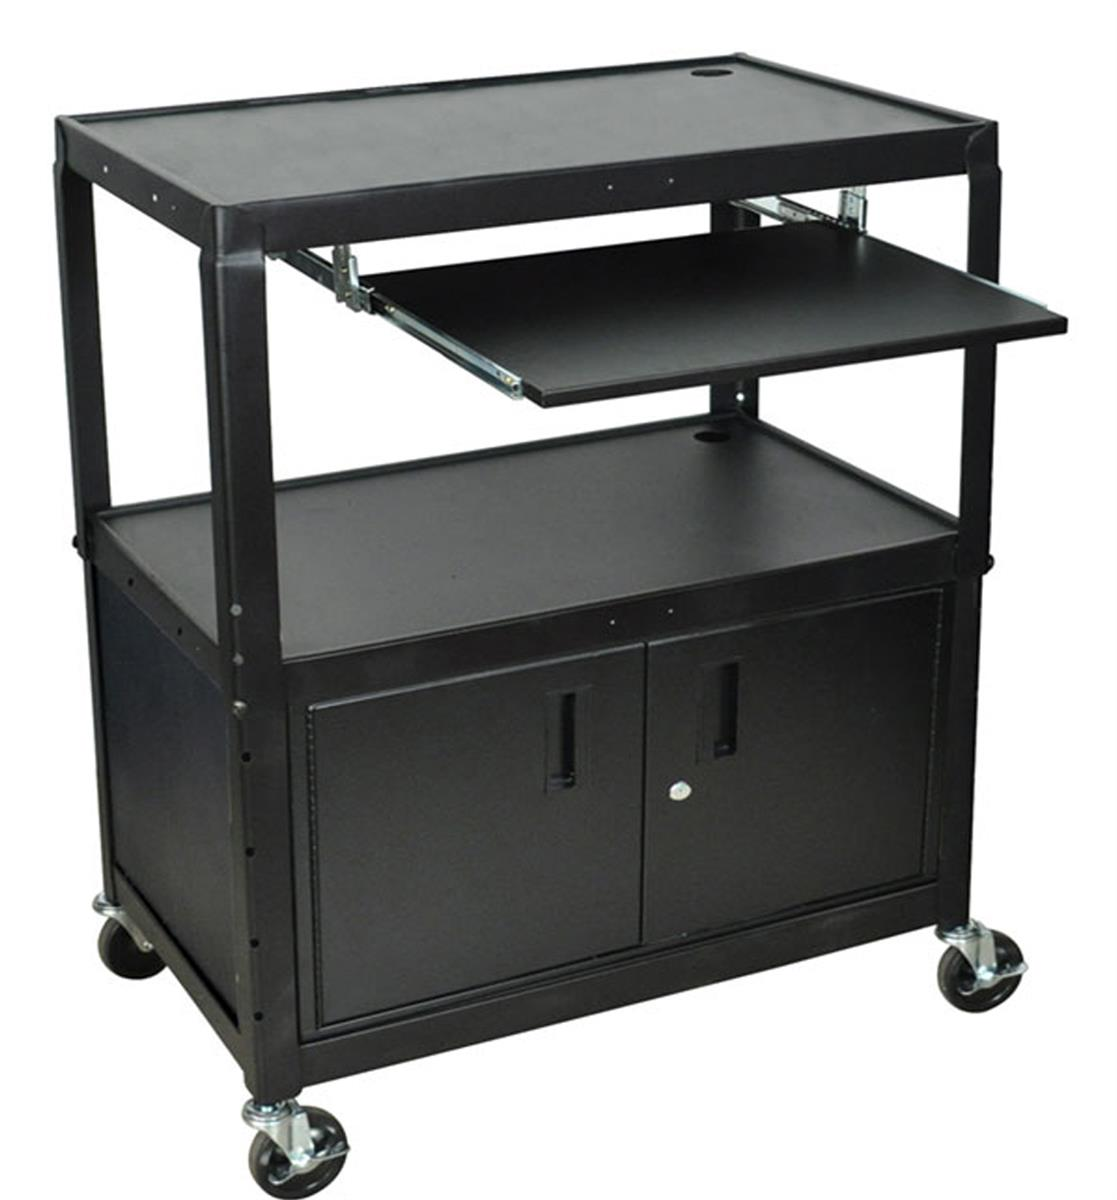 Locking Av Cabinet Audio Visual Trolleys Projector Carts With Locking Security Cabinets